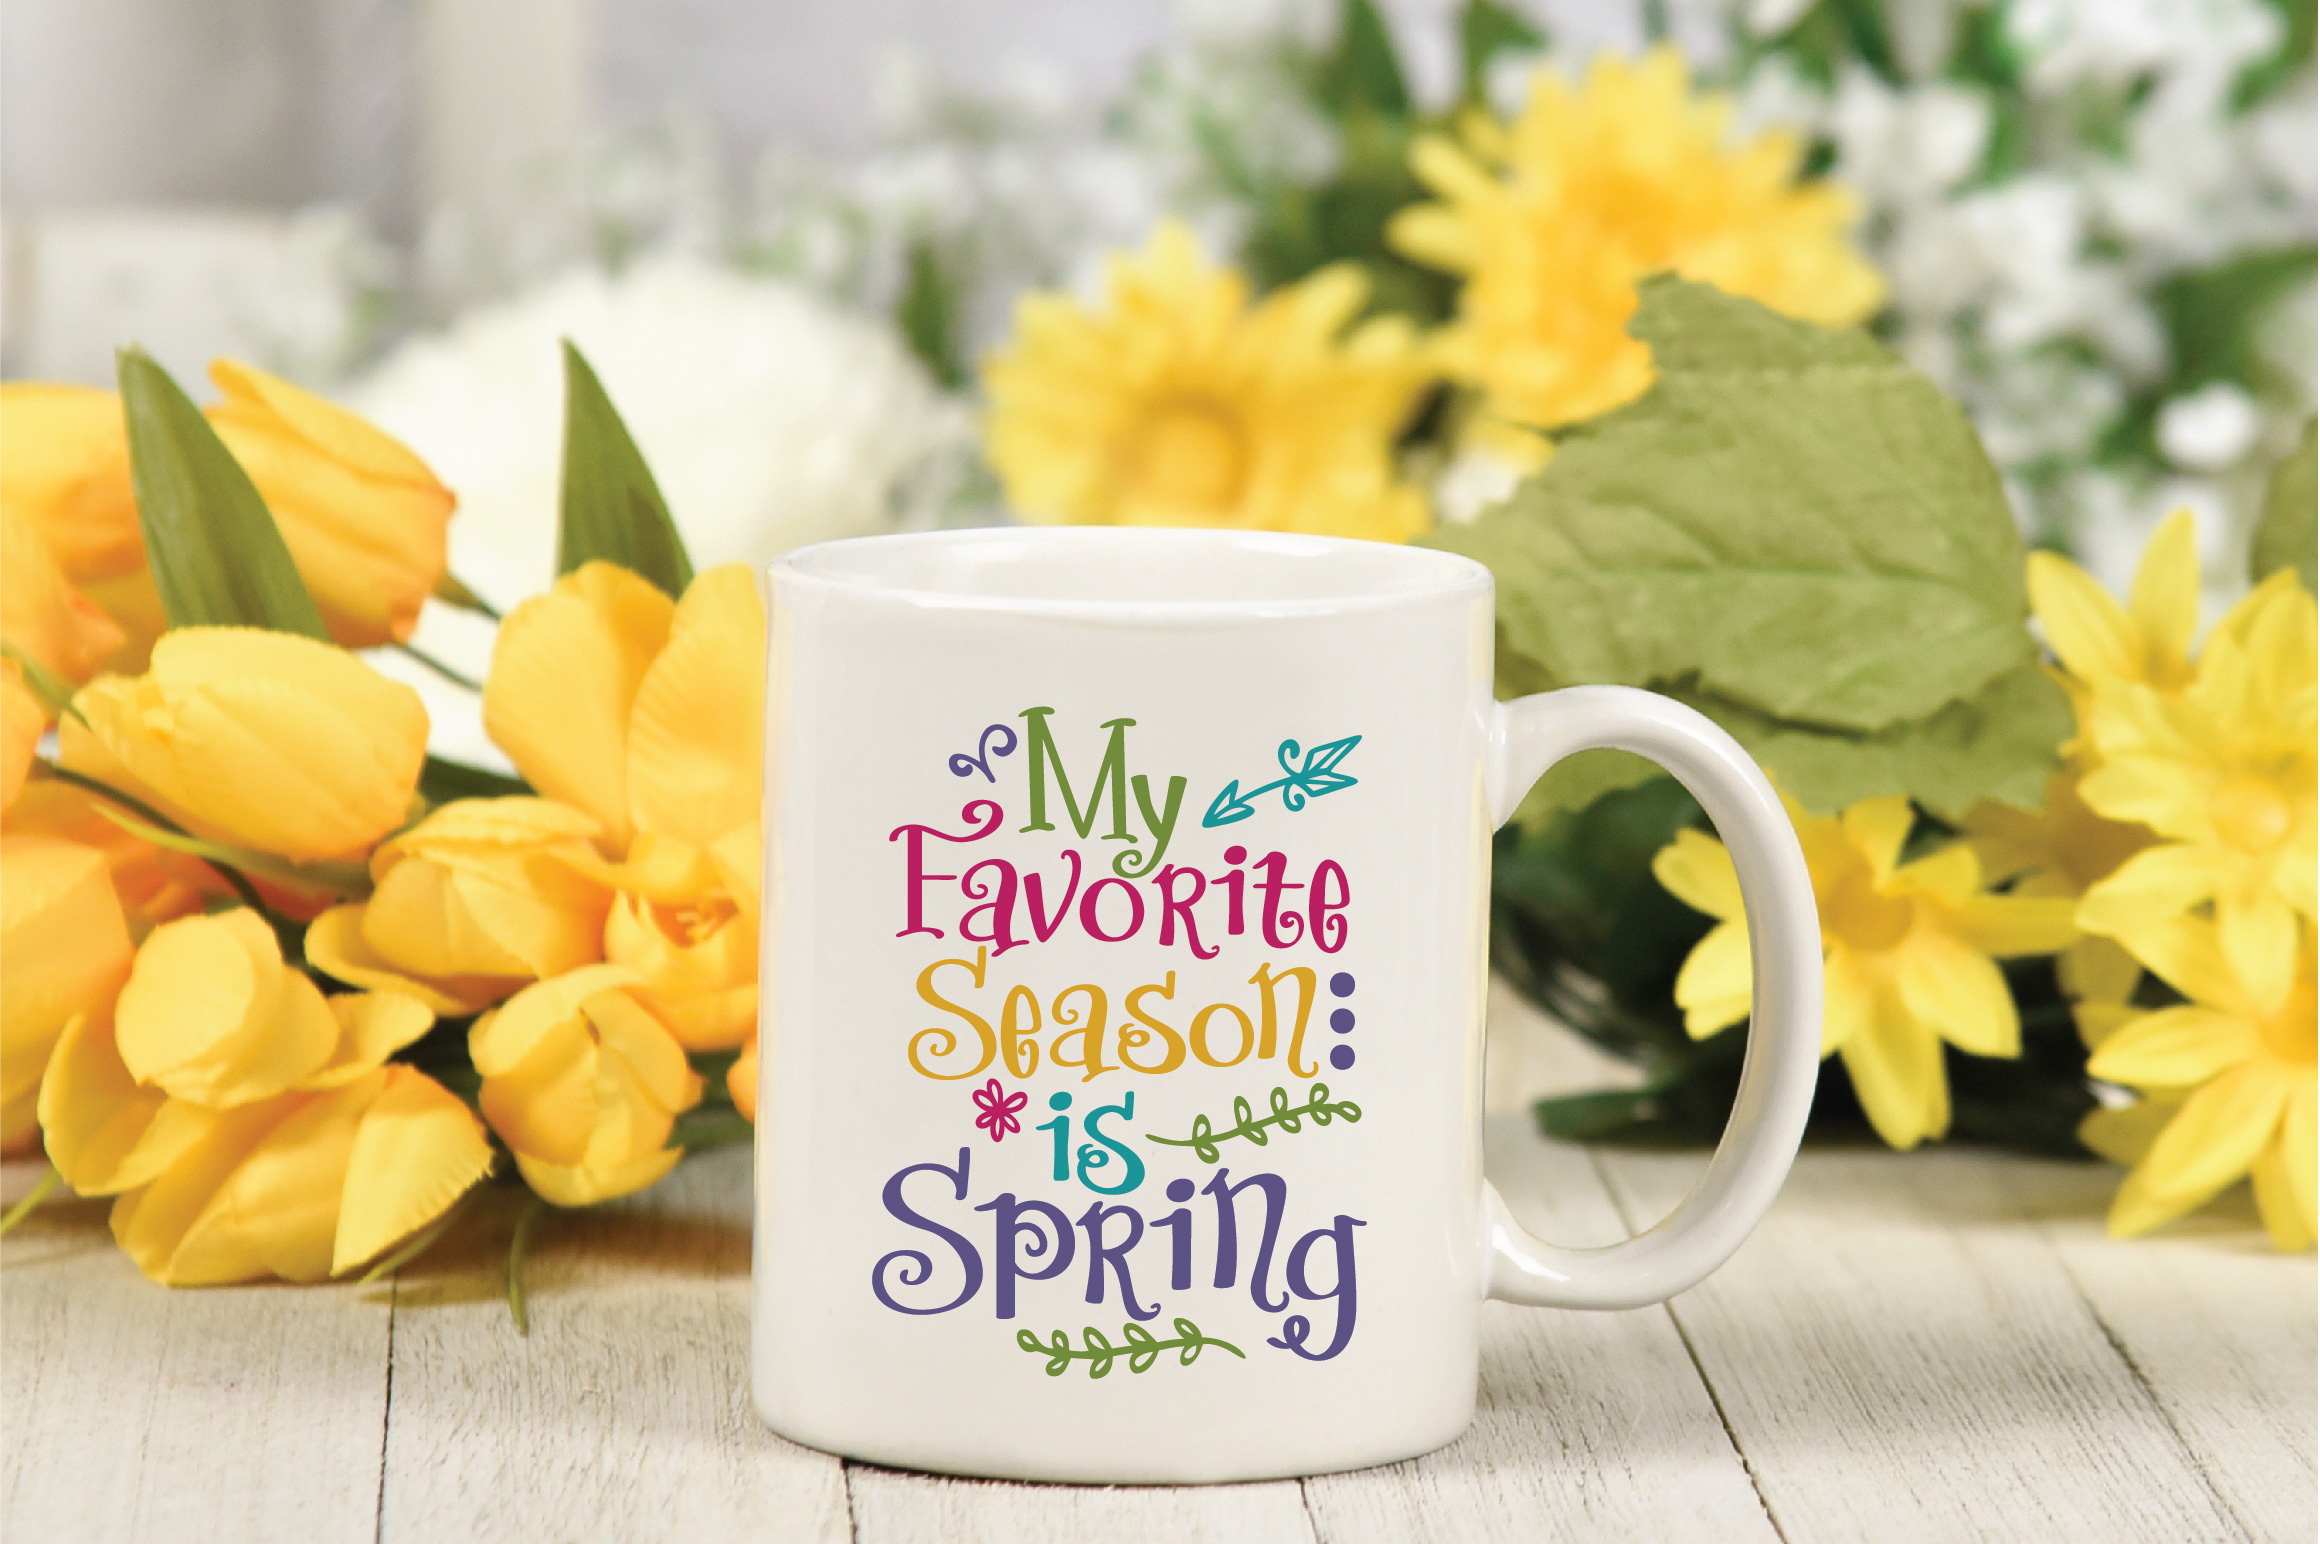 My Favorite Season is Spring SVG Cut File - Spring SVG DXF example image 3